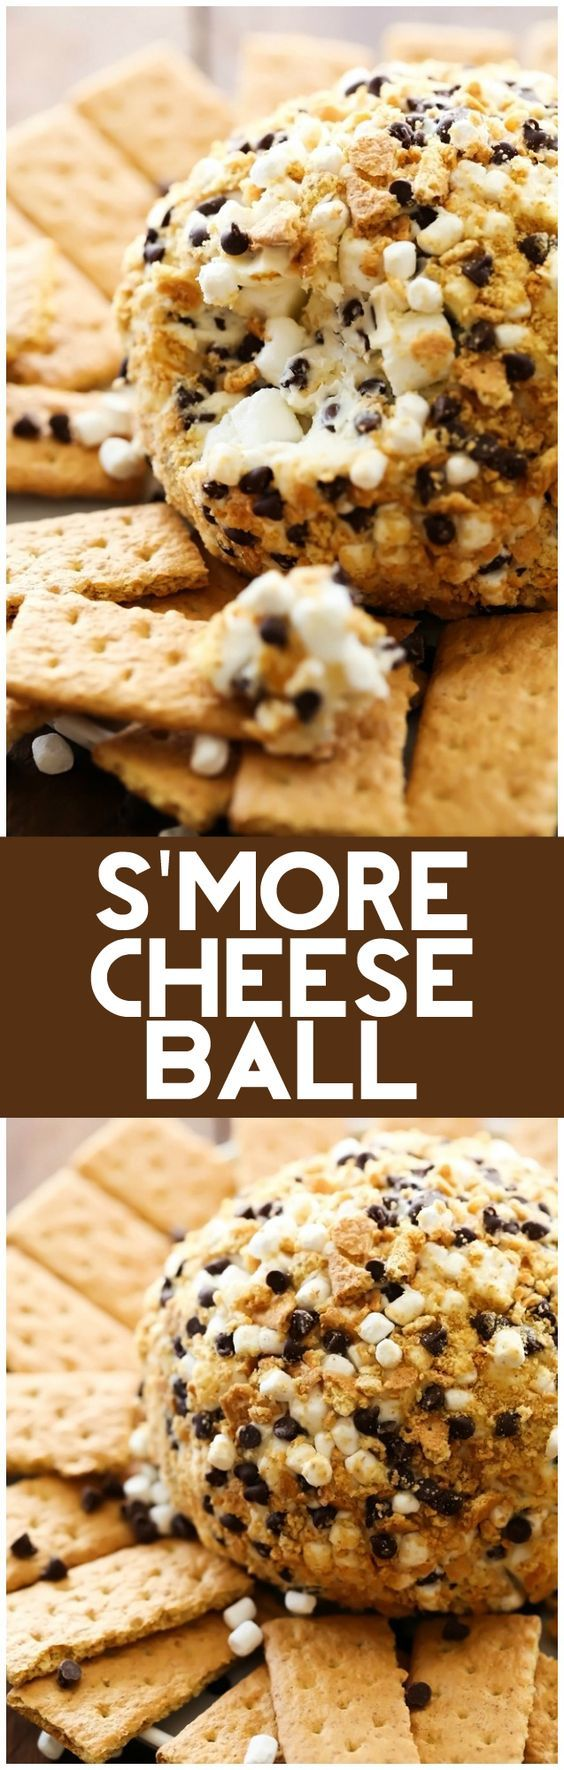 S'mores Cheese Ball recipe